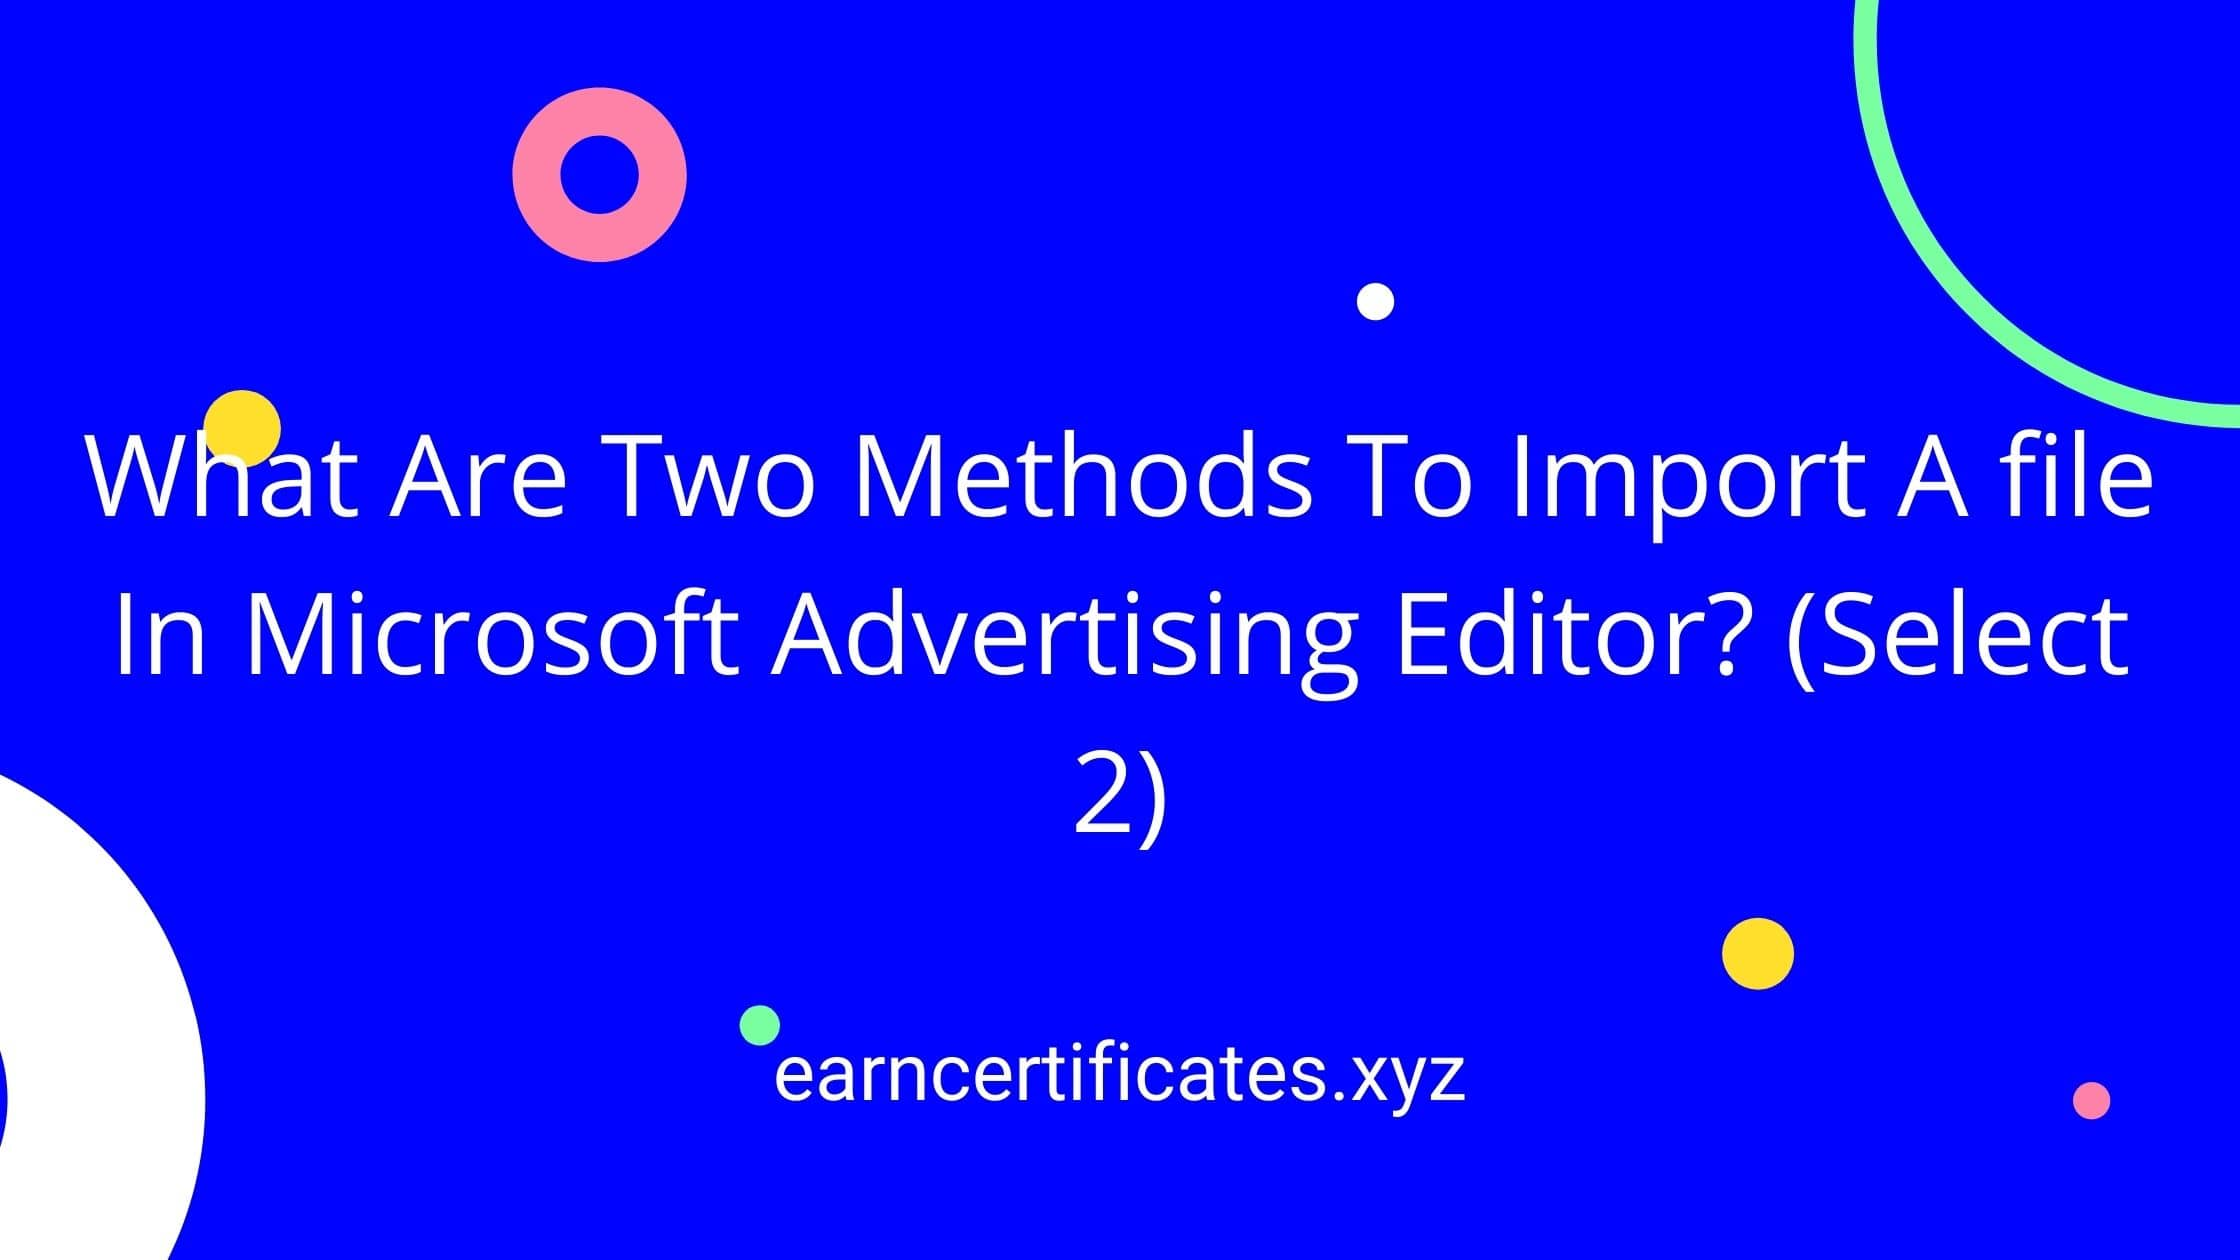 What Are Two Methods To Import A file In Microsoft Advertising Editor? (Select 2)